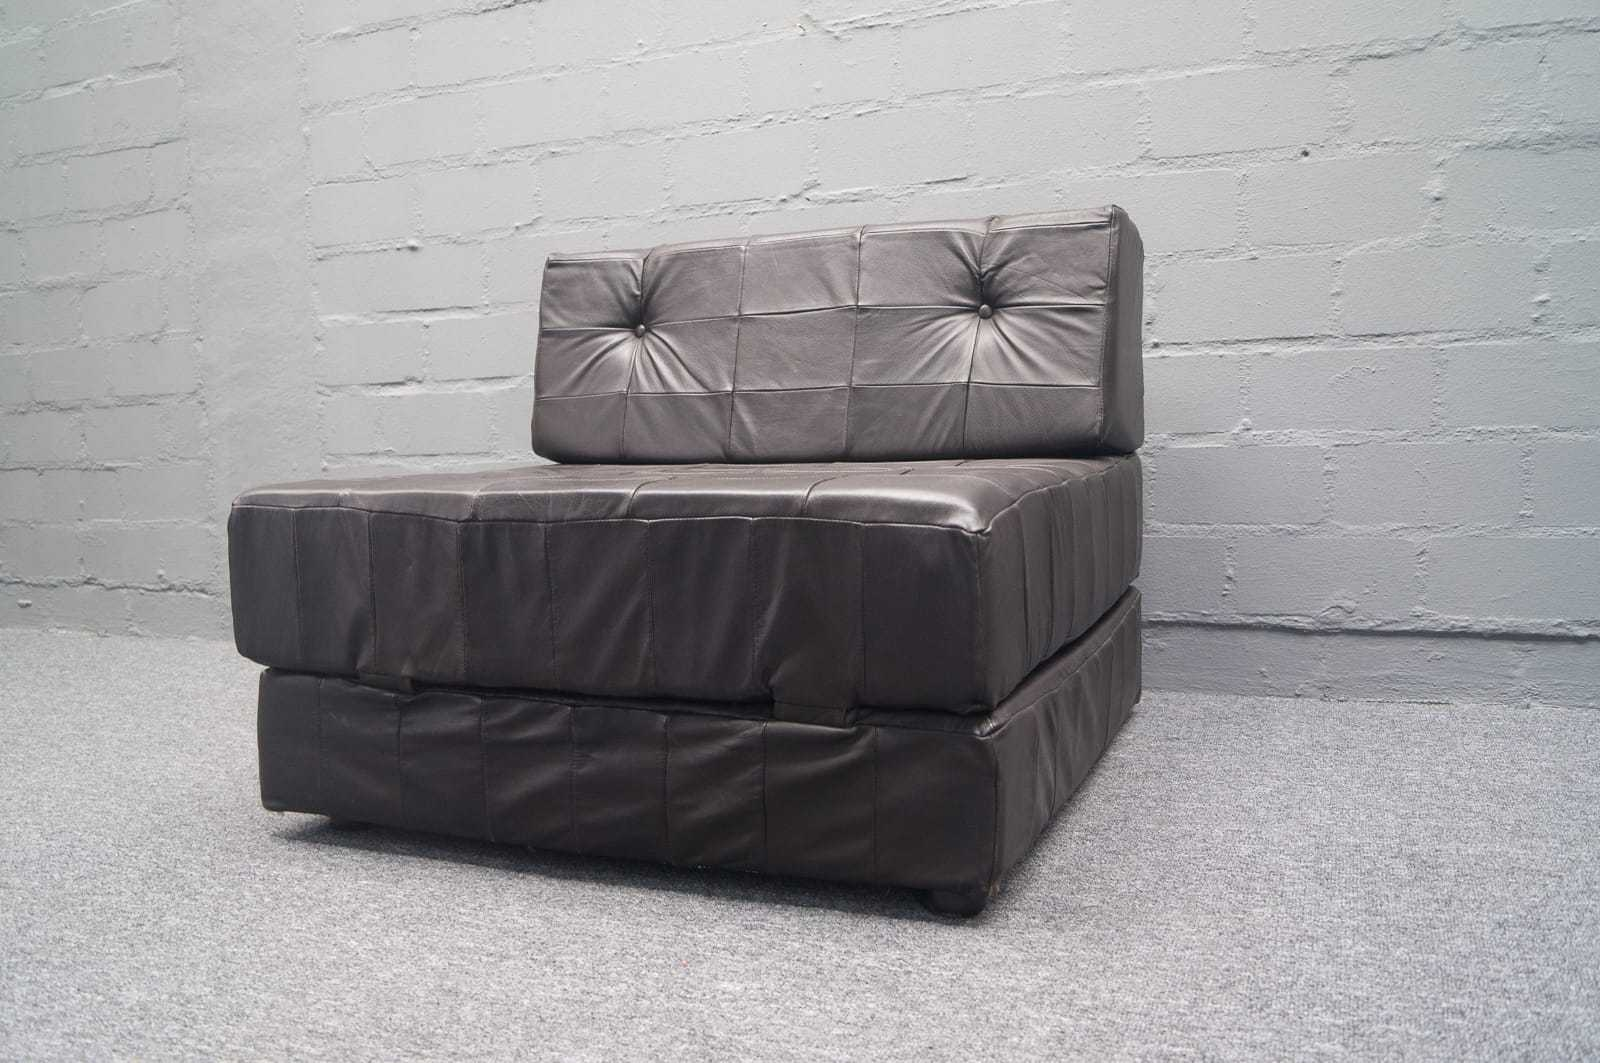 sofa 2 armchairs leather patchwork daybed stil sessel sofa 60er 70s ebay. Black Bedroom Furniture Sets. Home Design Ideas